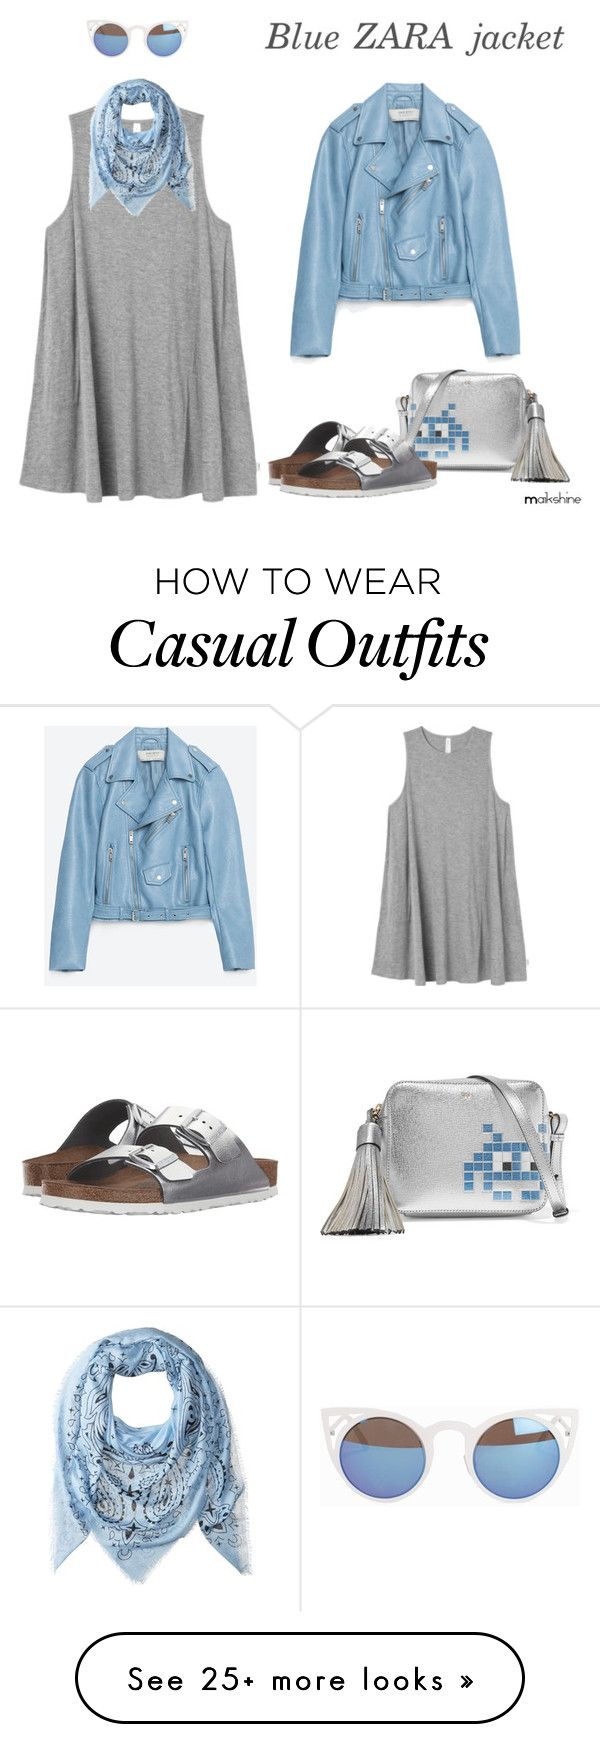 """""""Blue ZARA jacket, casual outfit"""" by maikshine on Polyvore featuring Anya Hindmarch, RVCA, Jakke, Quay, Chan Luu and Birkenstock"""